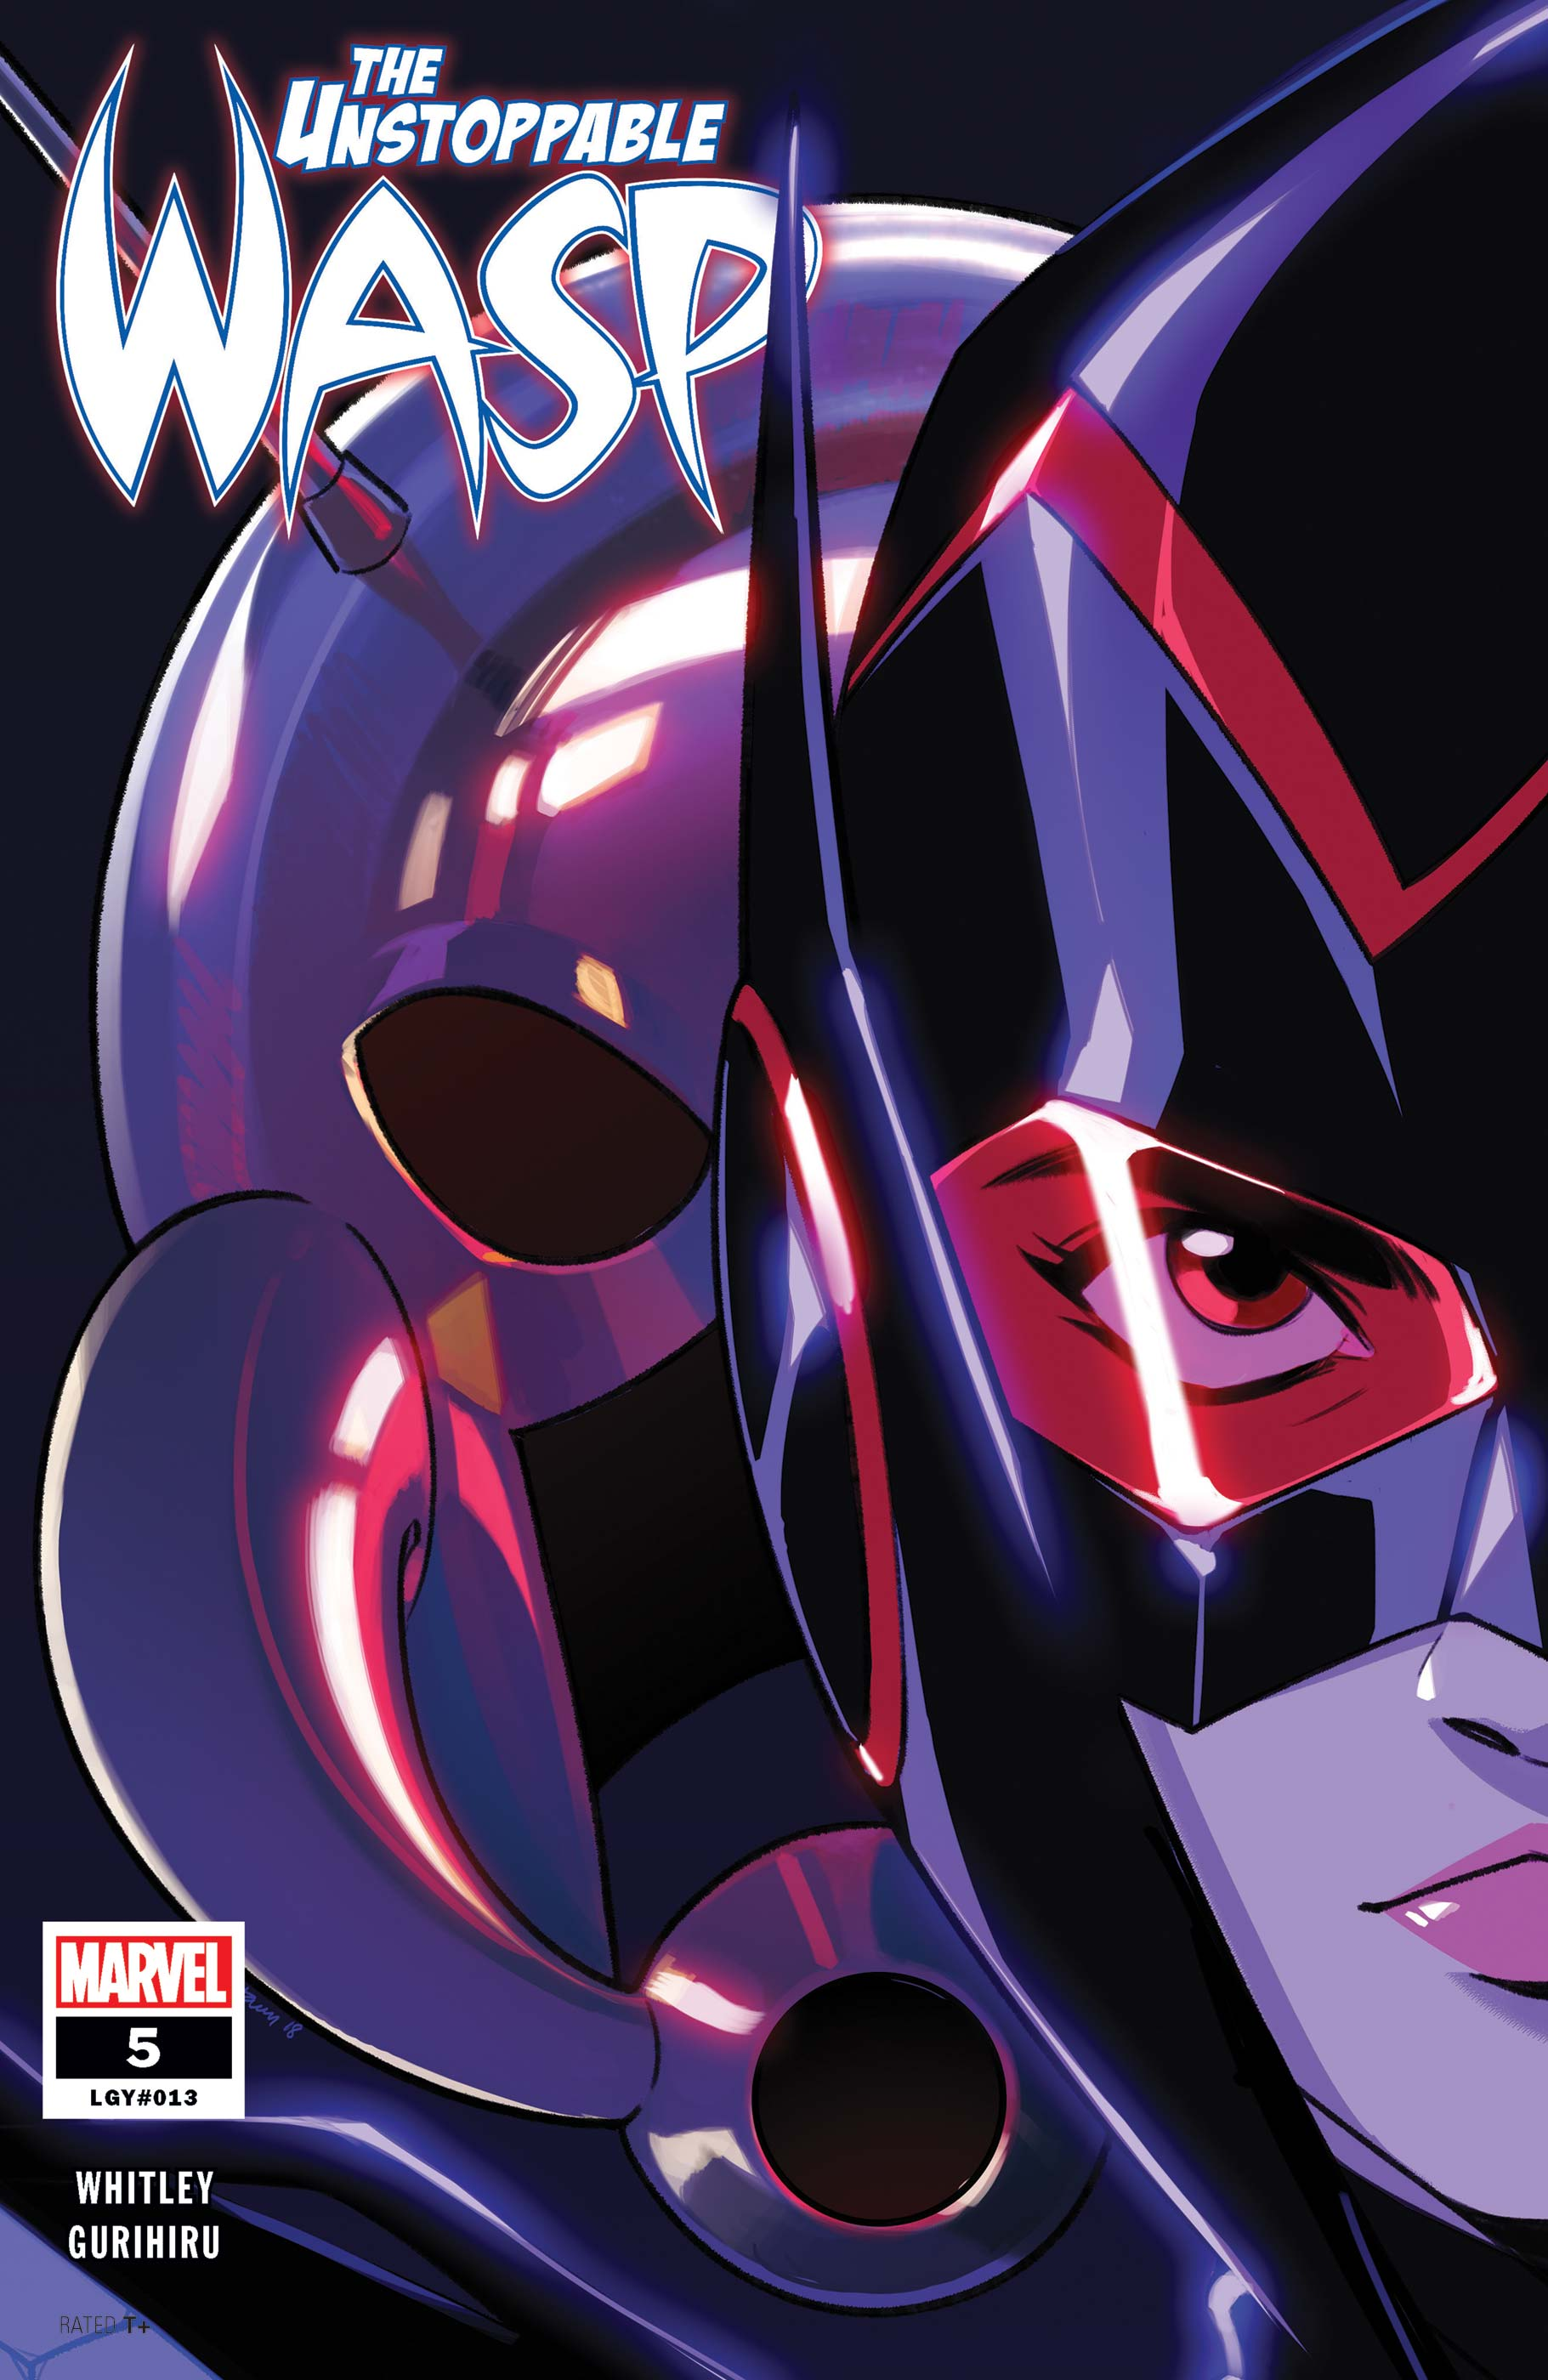 The Unstoppable Wasp (2018) #5